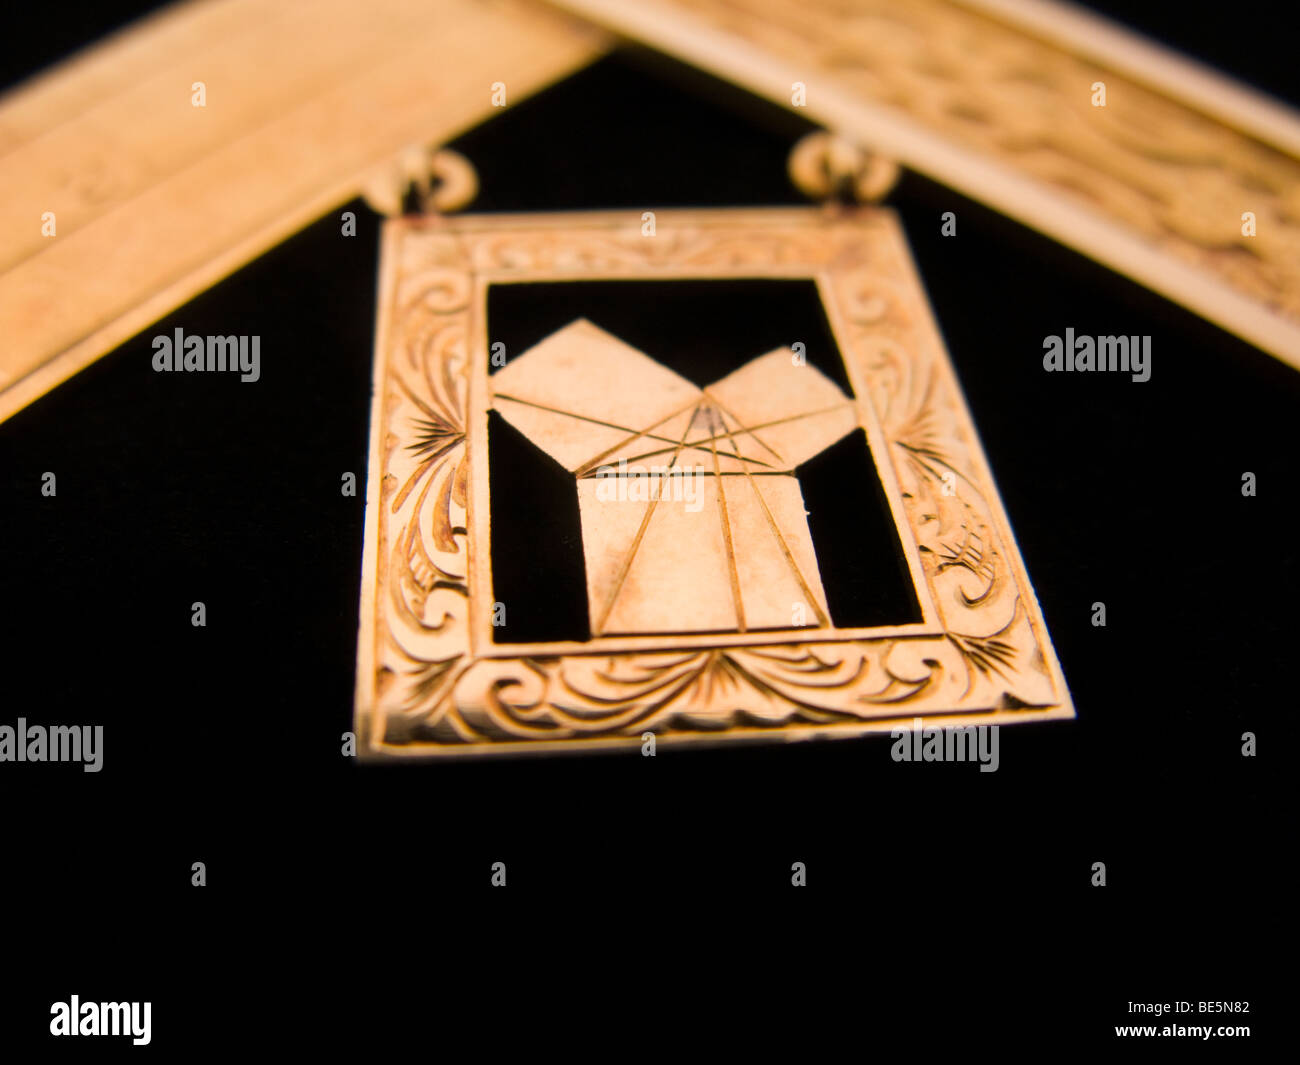 Pythagorean Theorem symbolised with a diagram engraved on a masonic Past Master medal jewel, in gold. - Stock Image